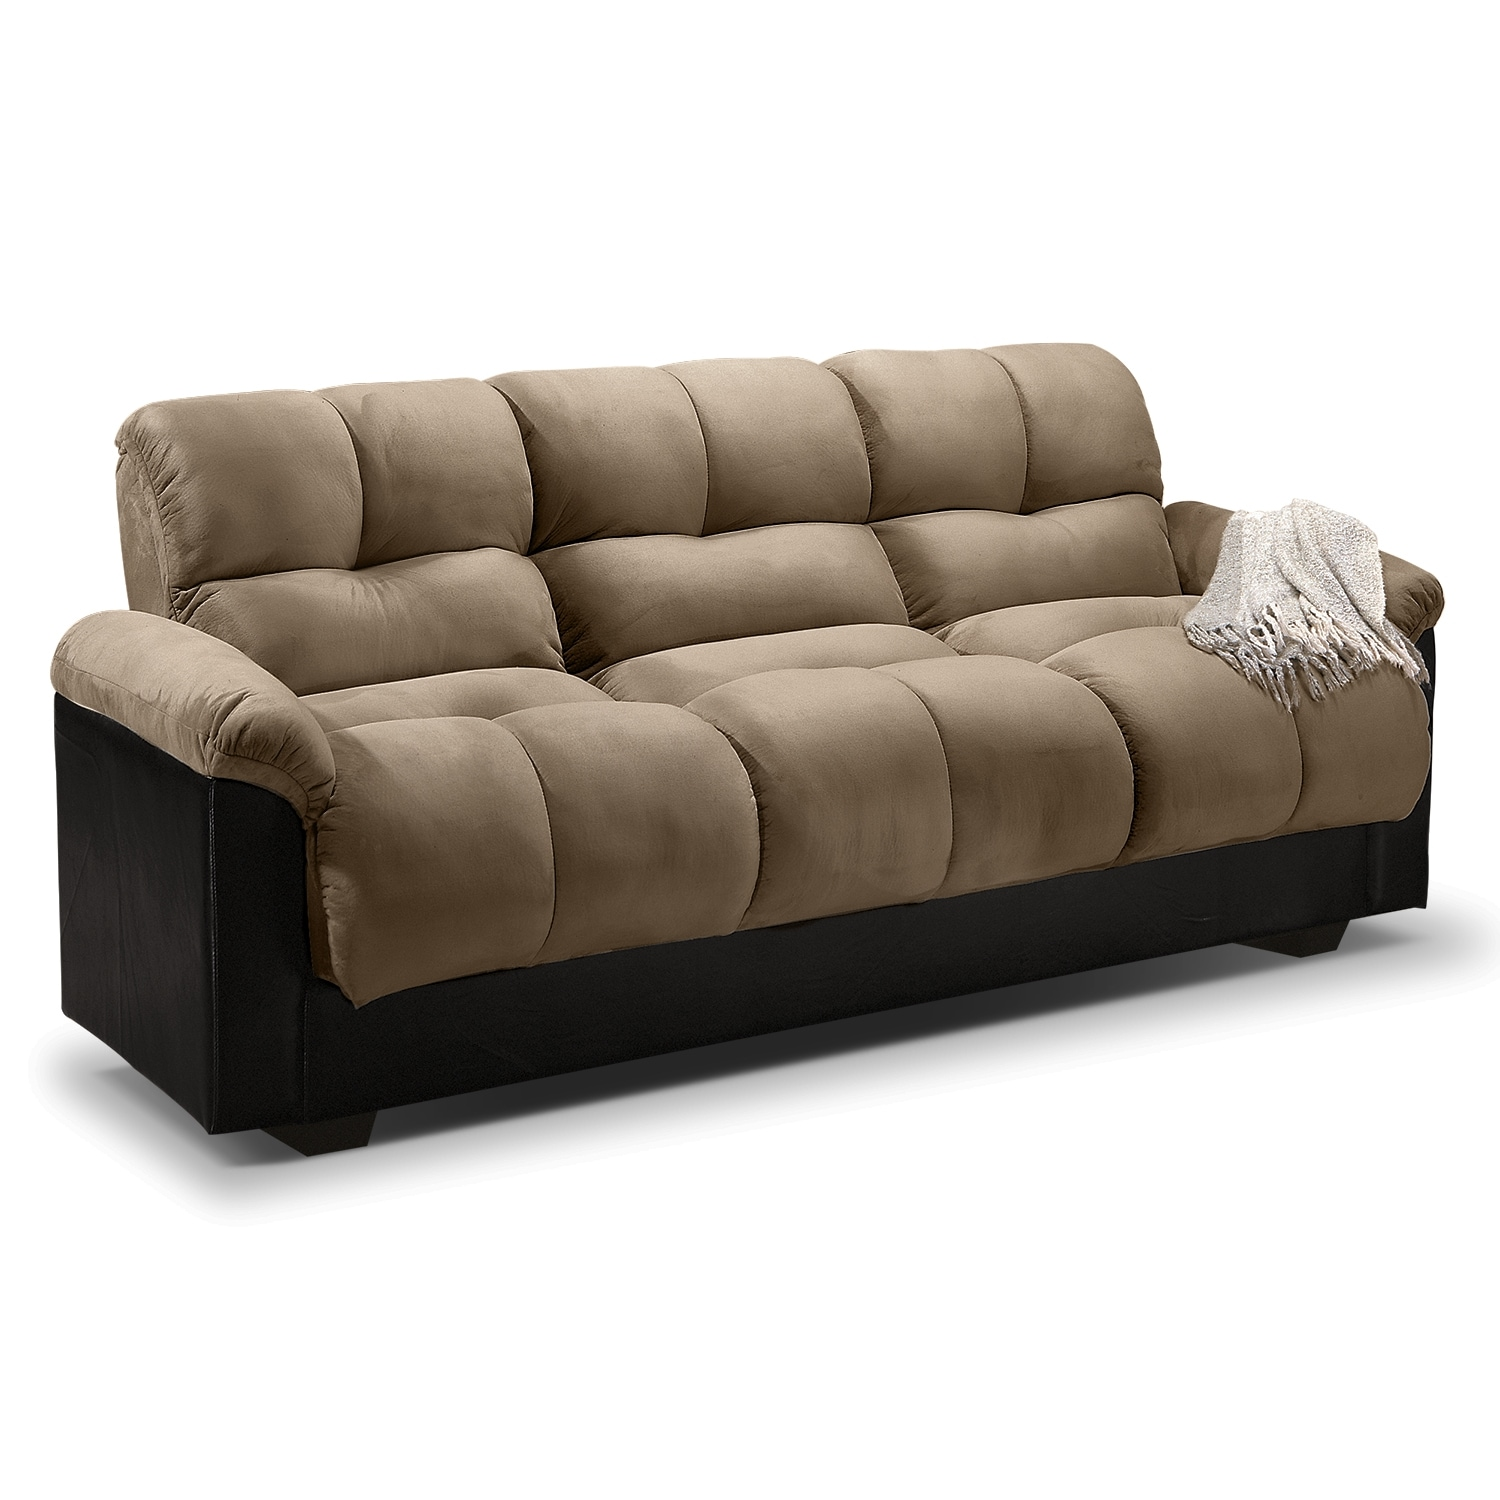 Crawford futon sofa bed with storage for Sofa bed 91762